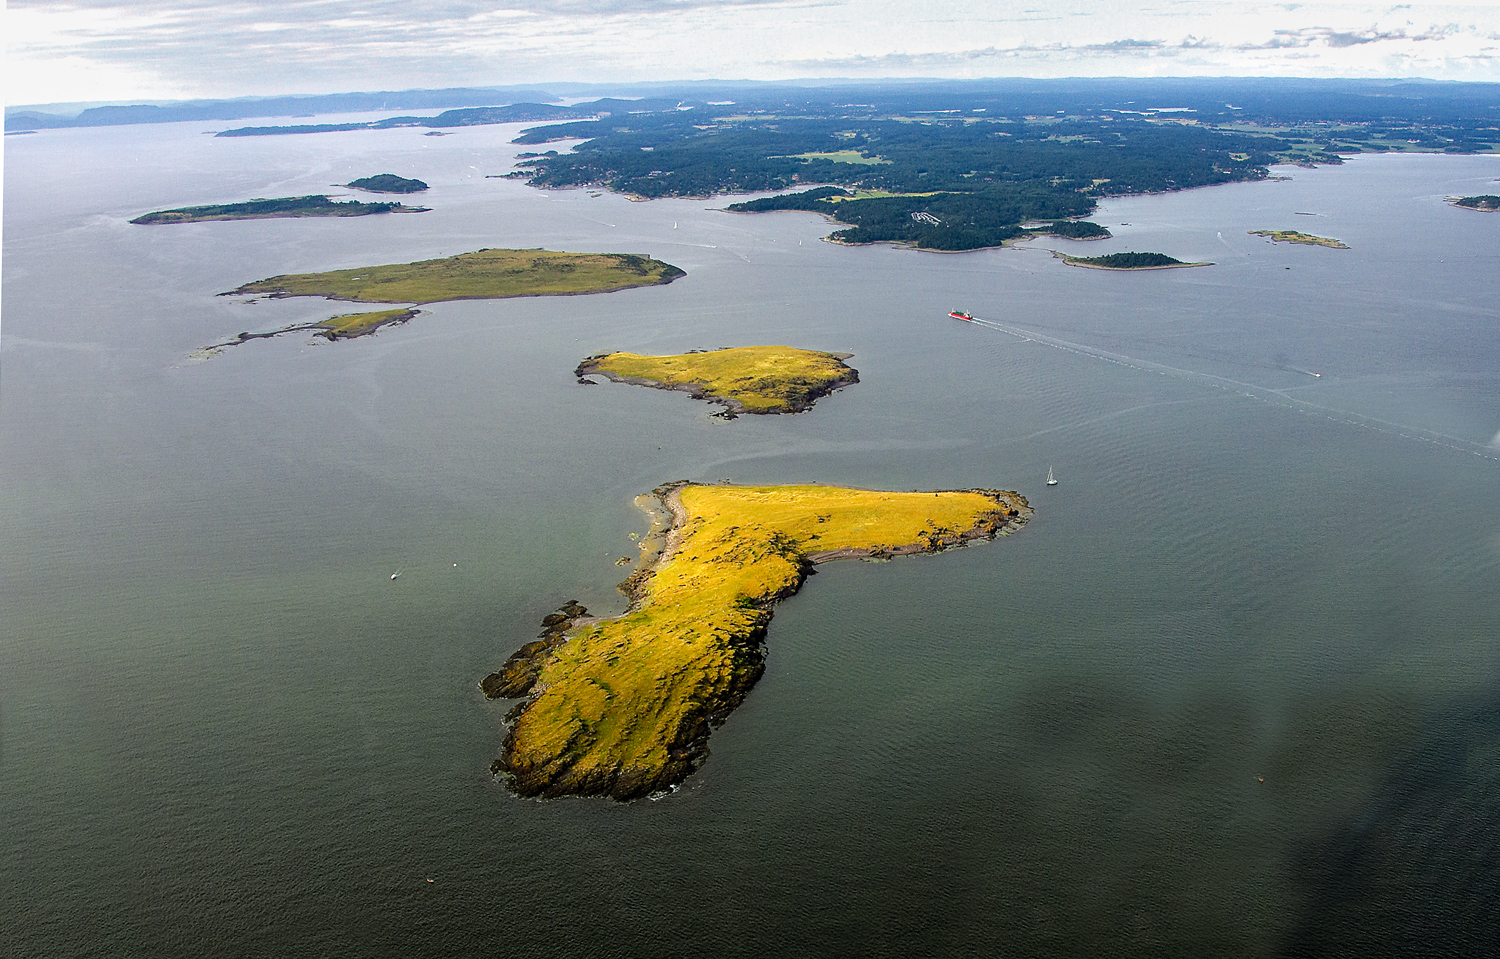 The three Sletter islands (Store Sletter, Midtre Sletter and Søndre Sletter) located southwest of Larkollneset, confirm their kinship with the other islands along the Østfold coast. A reddish, sharp and gnarled conglomerate of rhomb porphyry is sticking up in the day.The islands are a collection of flat, grassy islands off Larkollen. They can only be reached by boat, but docking is easy on all islands. Store Sletter has an especially nice sandy beach.